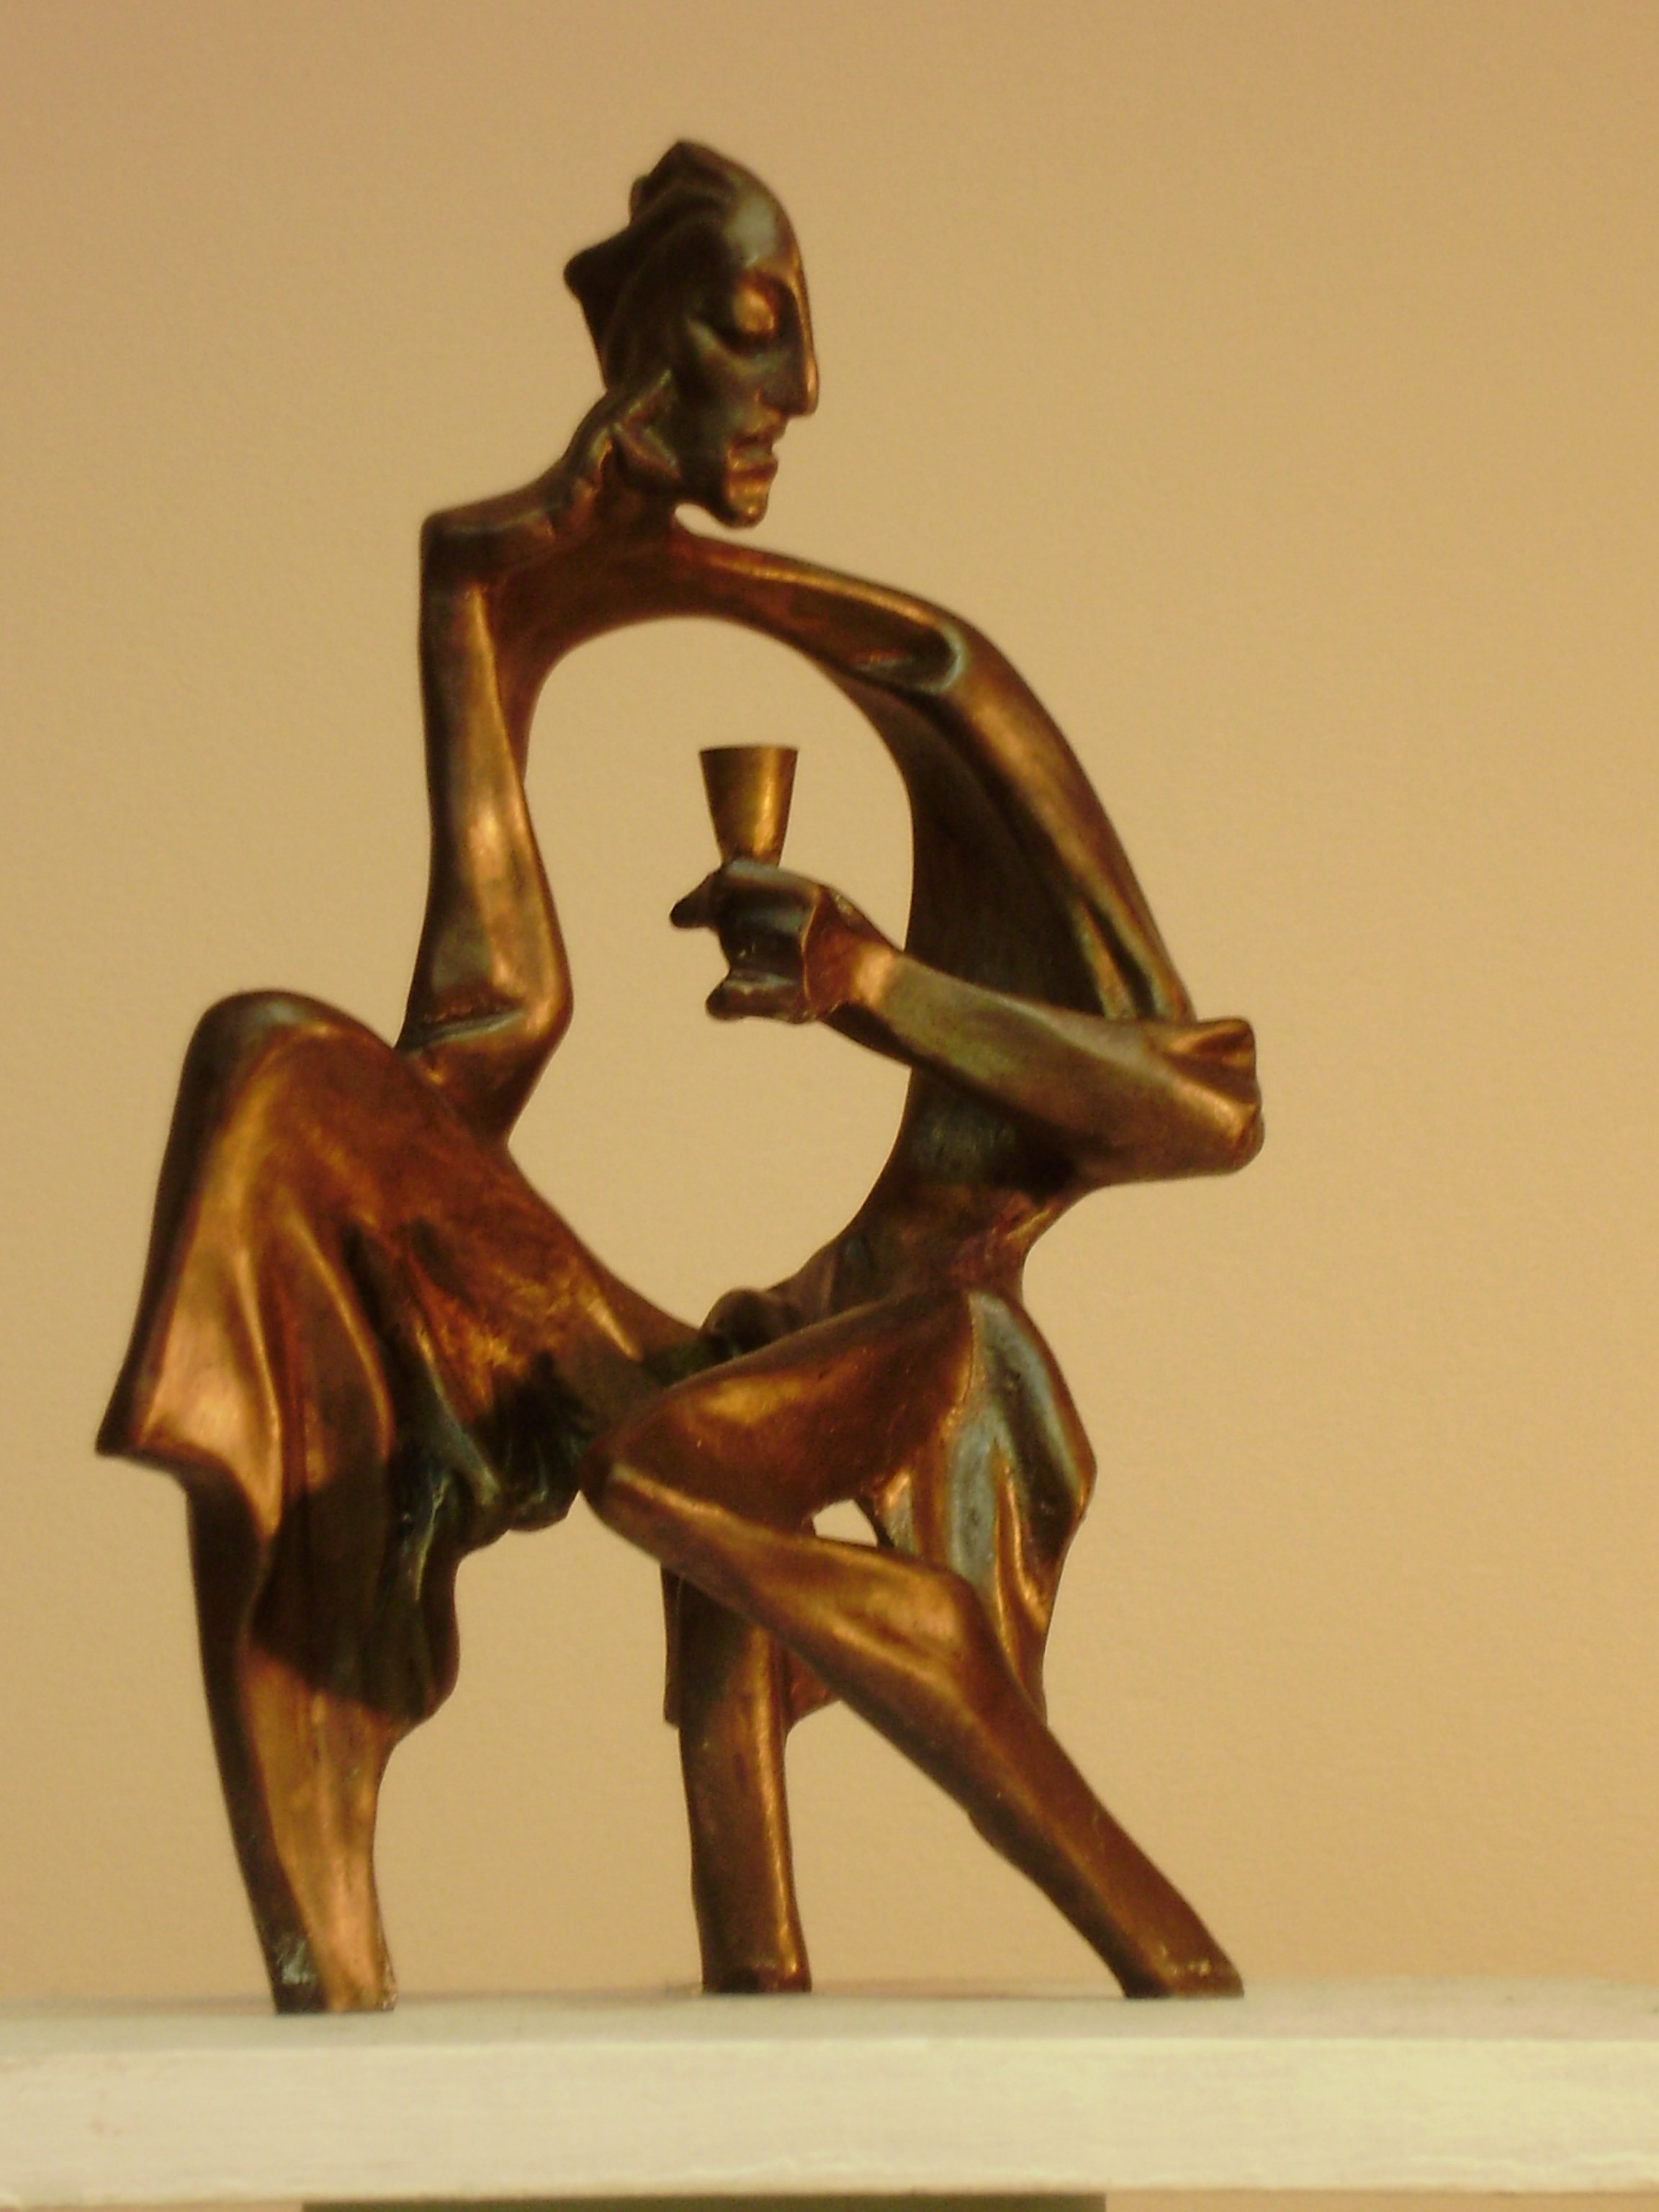 Alexander Iv Ivanov Artwork absinthe, 2014 Bronze Sculpture, Philosophy